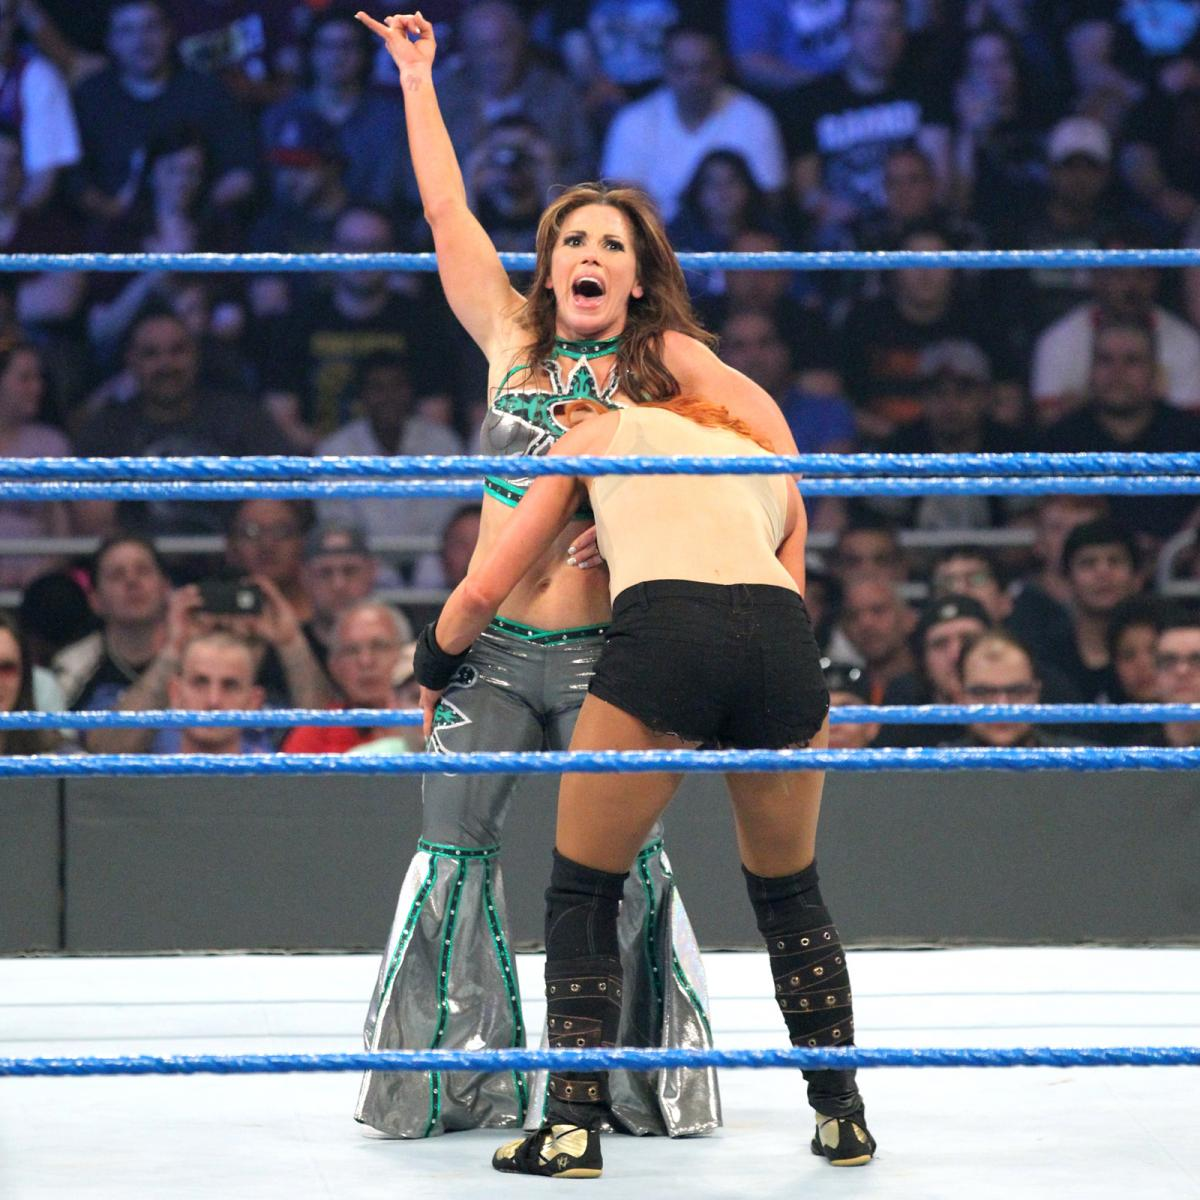 Mickie james in barefeet — pic 9